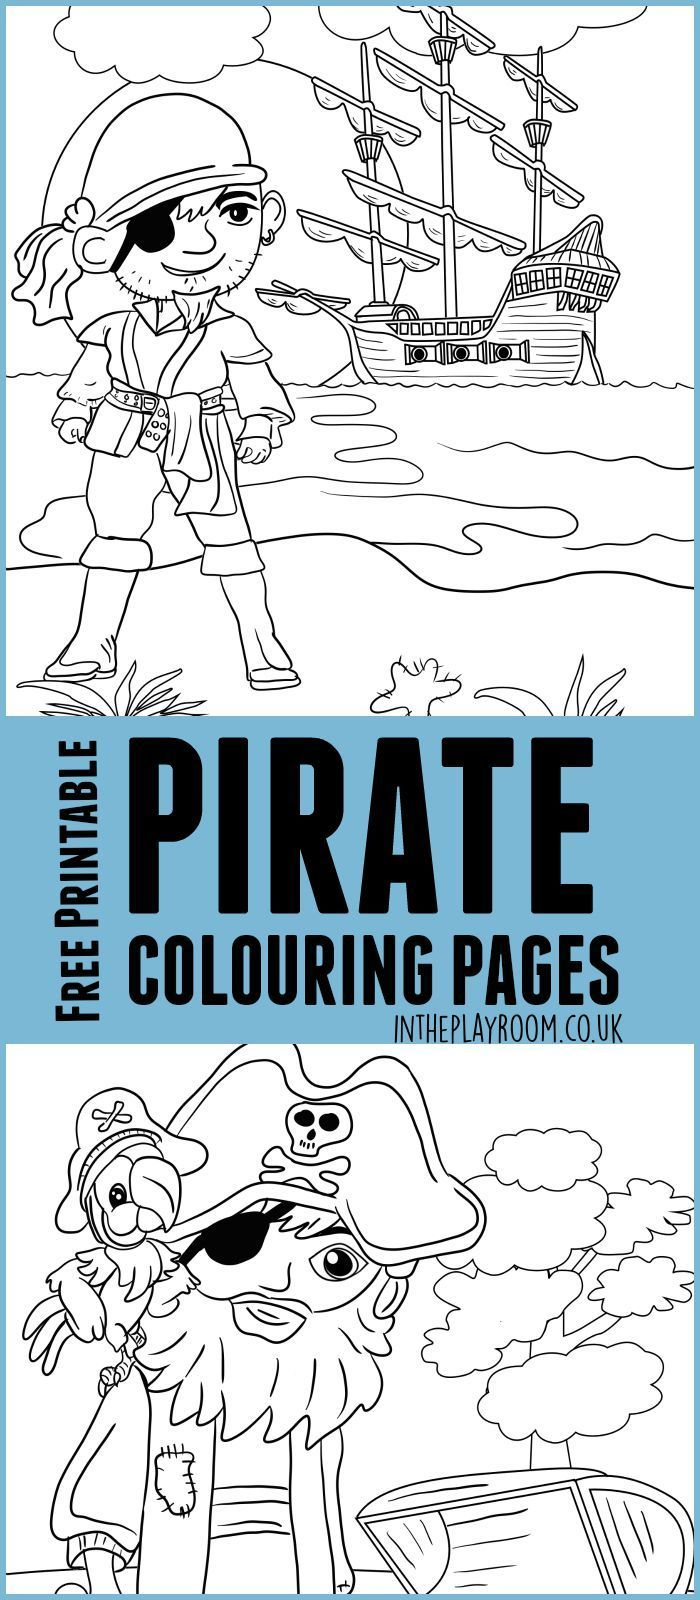 Pirate Colouring Pages for Kids | Pinterest | Free printables, Kid ...